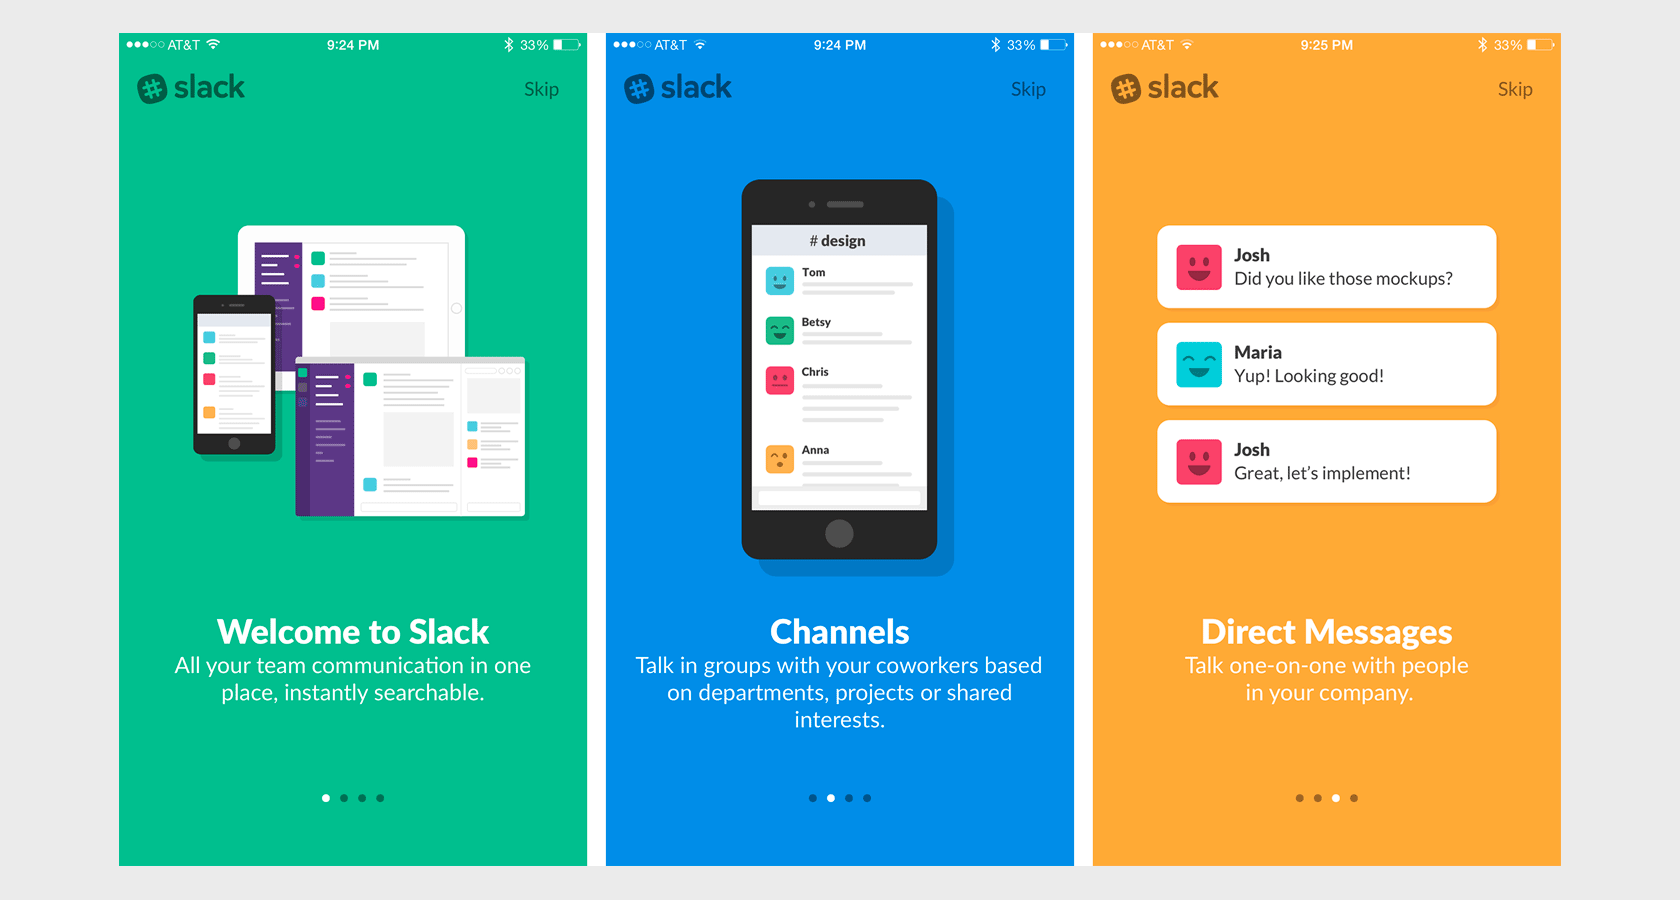 Slack uses introductory UX onboarding best practices.